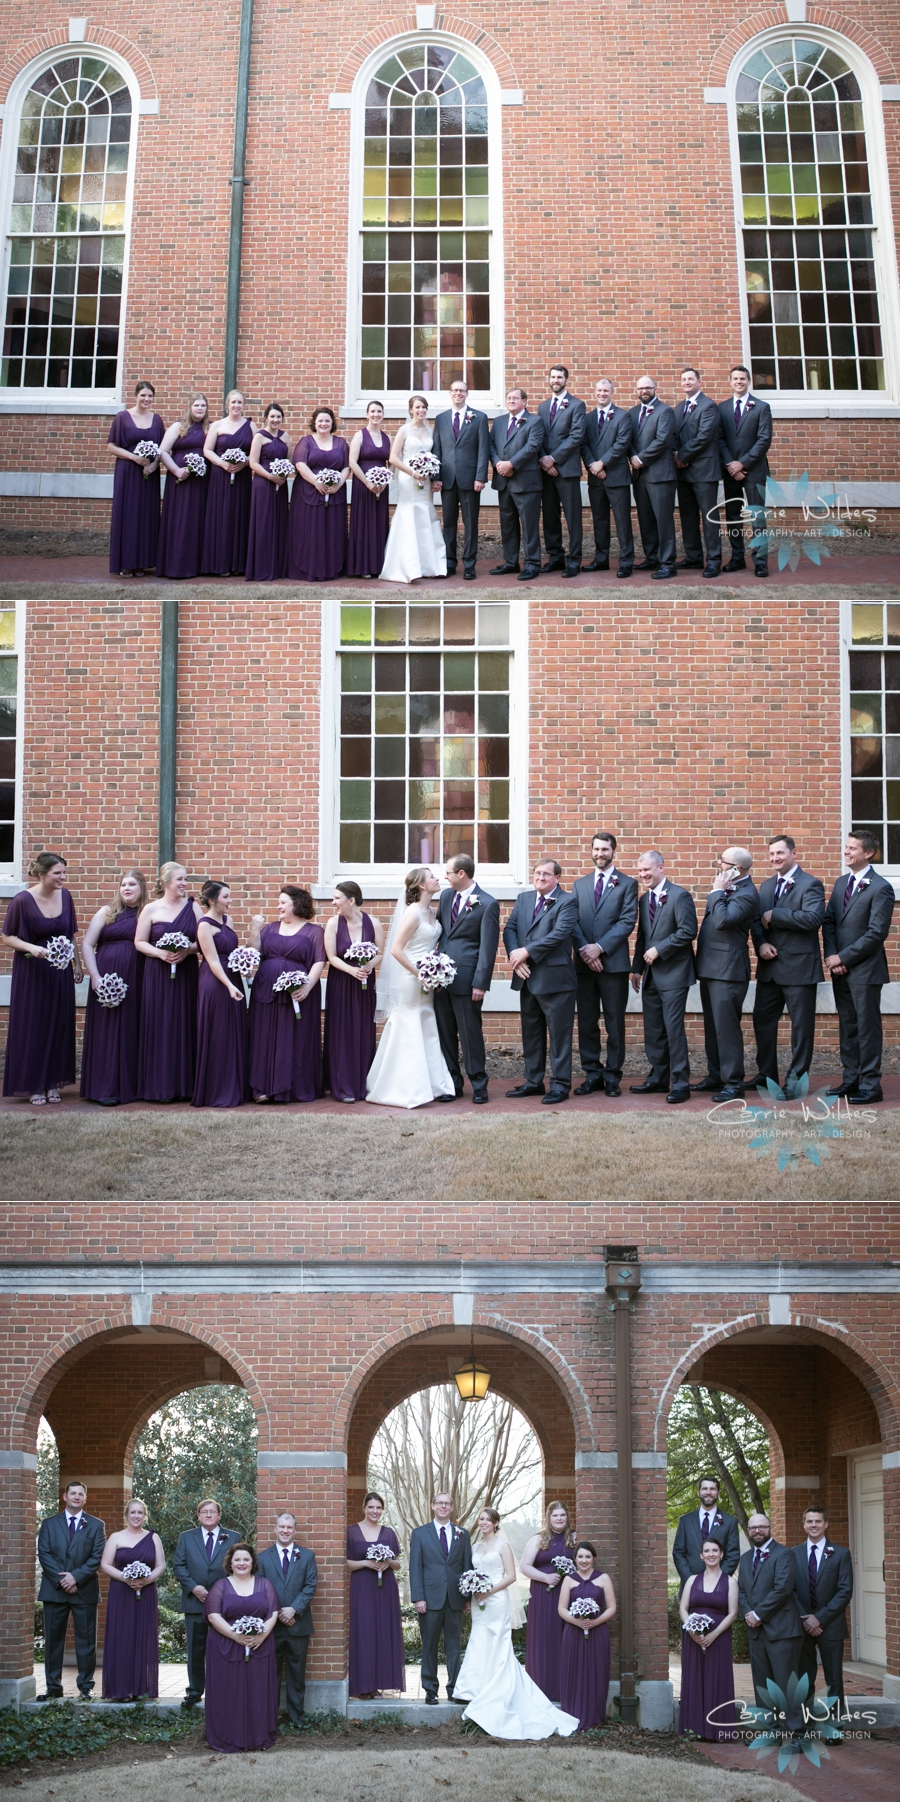 1_14_17 Jessica and Adam Samford University Wedding_0012.jpg